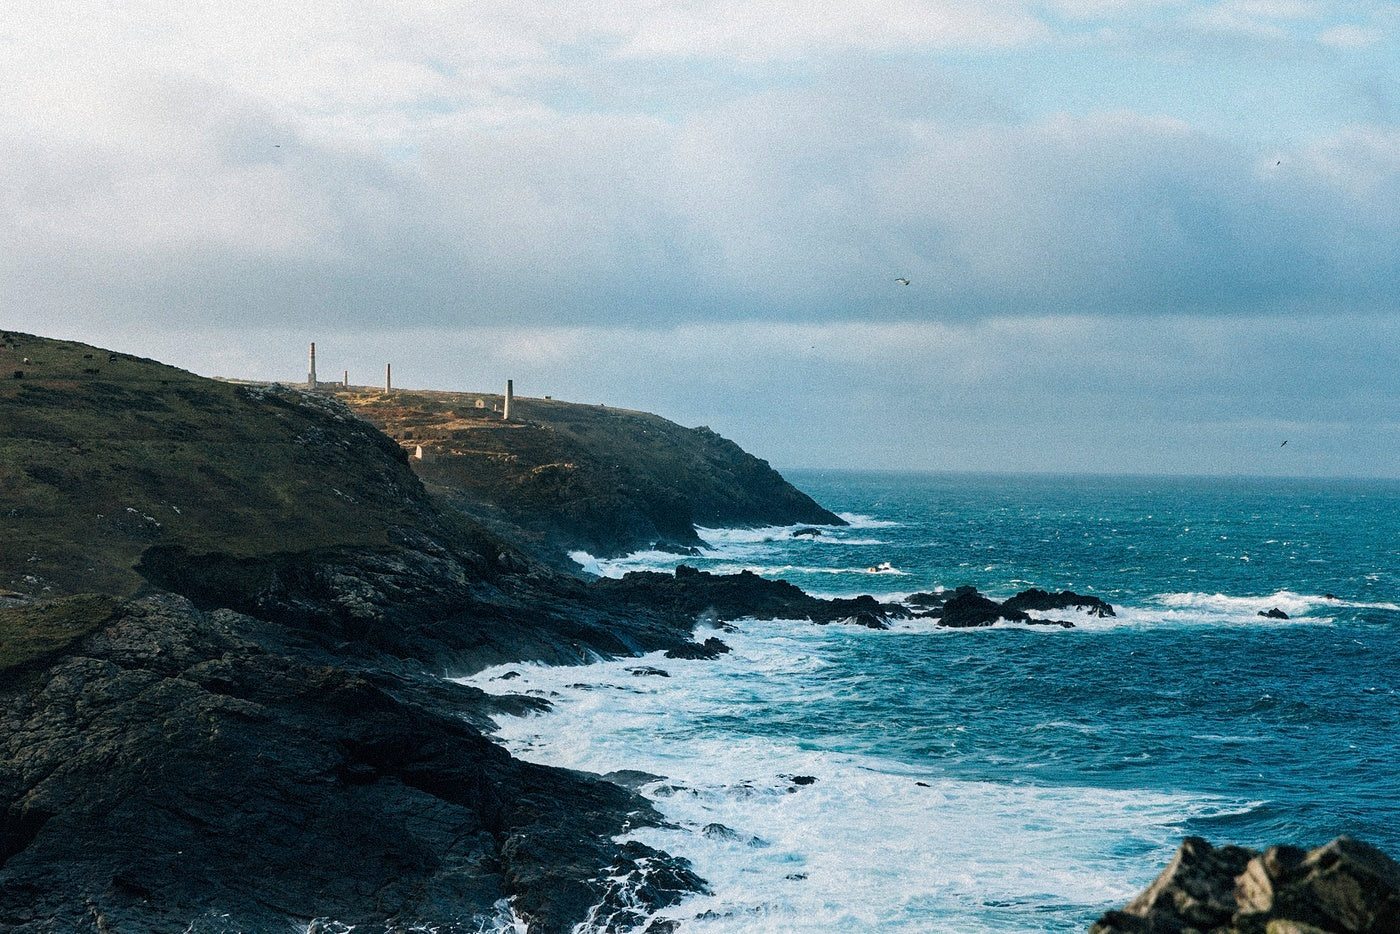 A windswept stretch of Cornish coastline, whitewater beating against the cliffs